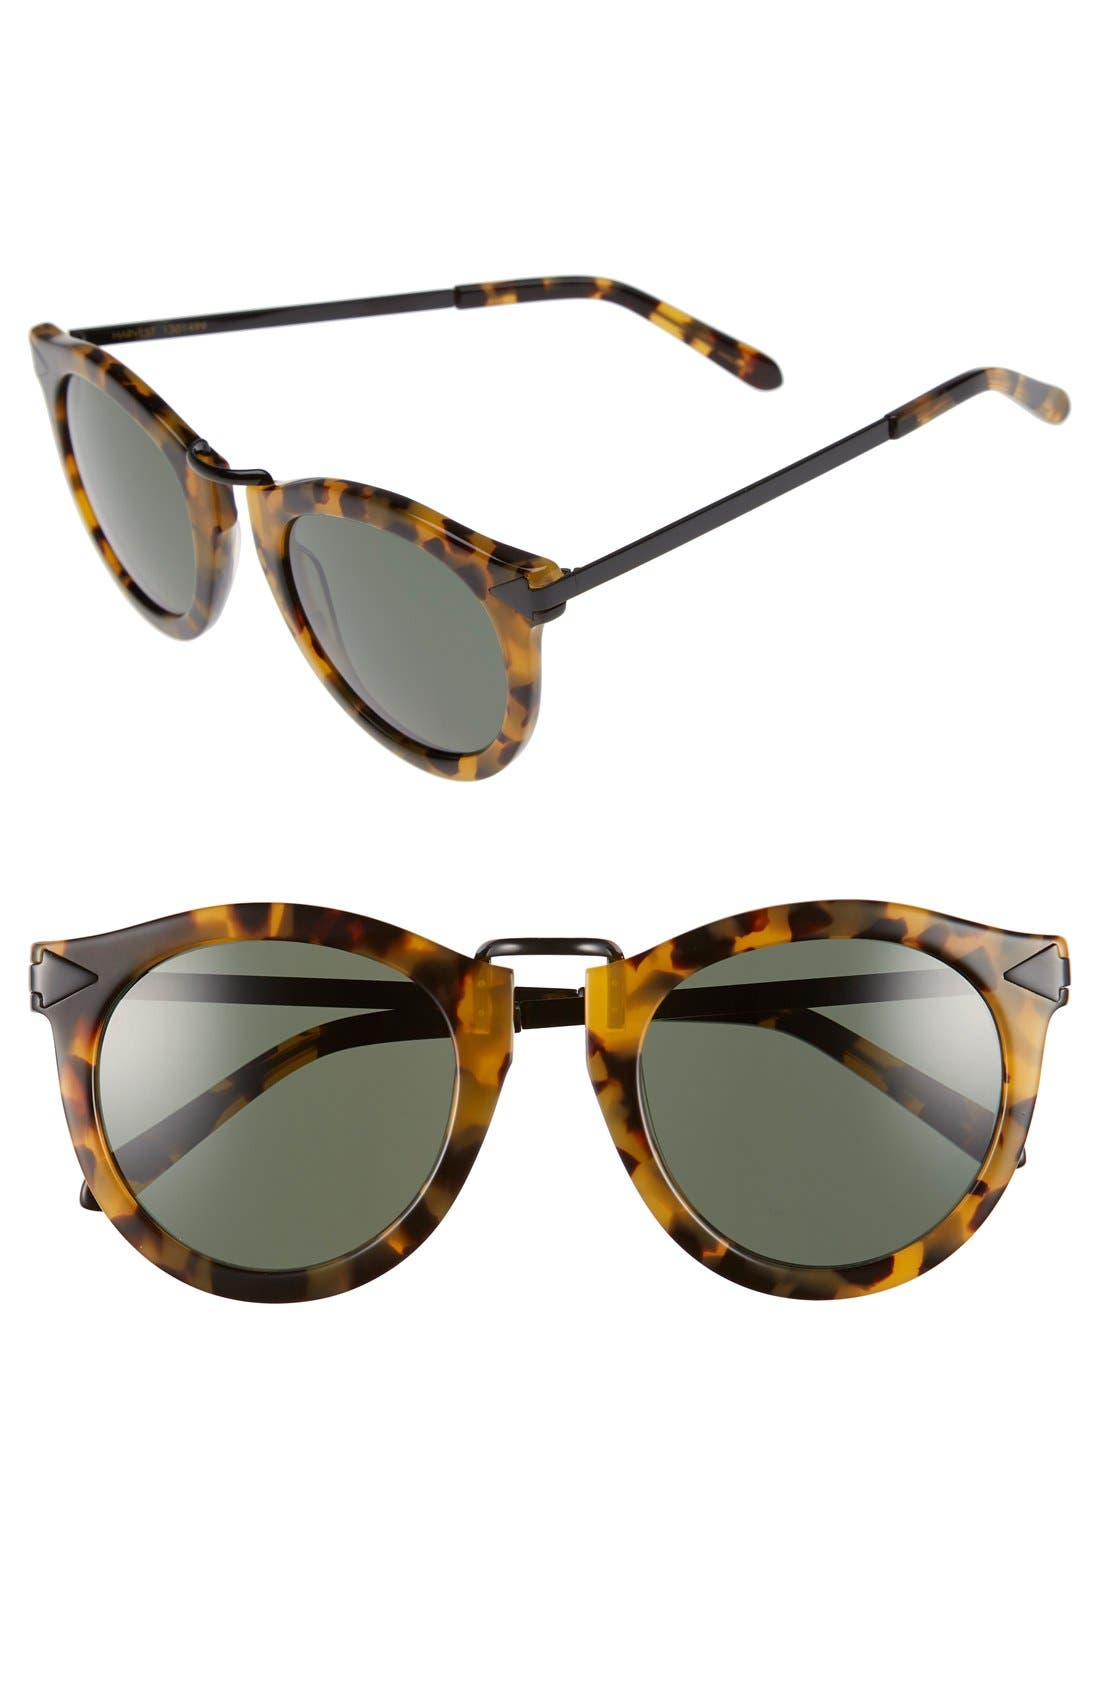 Karen Walker 'Harvest' 50mm Sunglasses